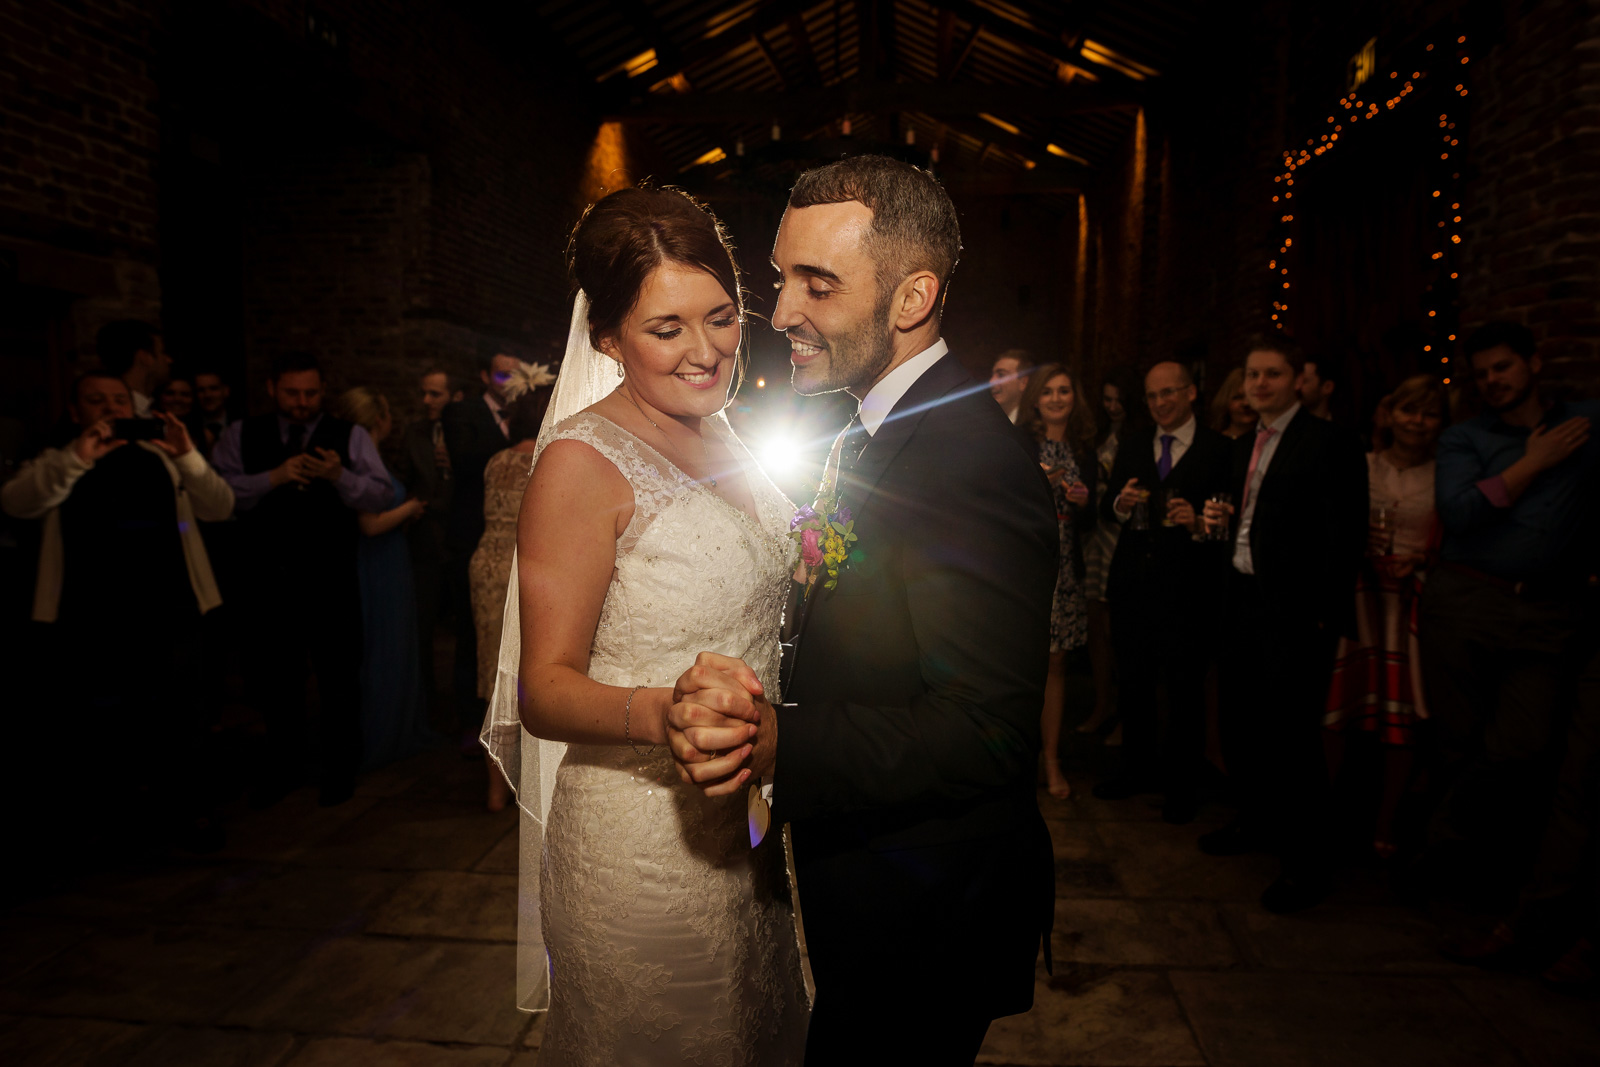 Meols Hall Wedding in Southport